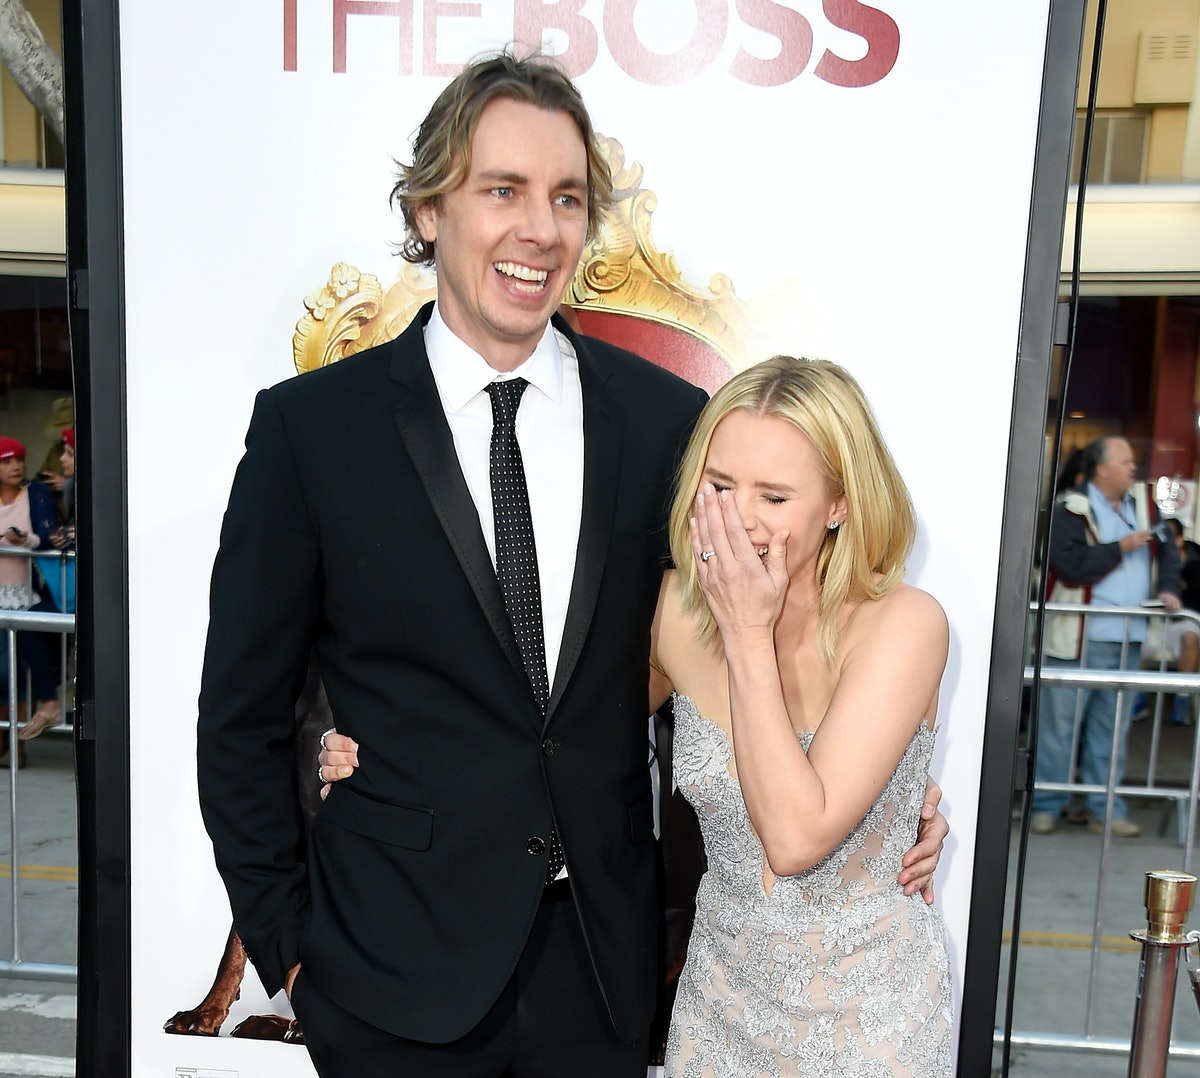 Kristen Bell & Dax Shepard's Quotes About Marriage In 'People' Are So Honest & Real